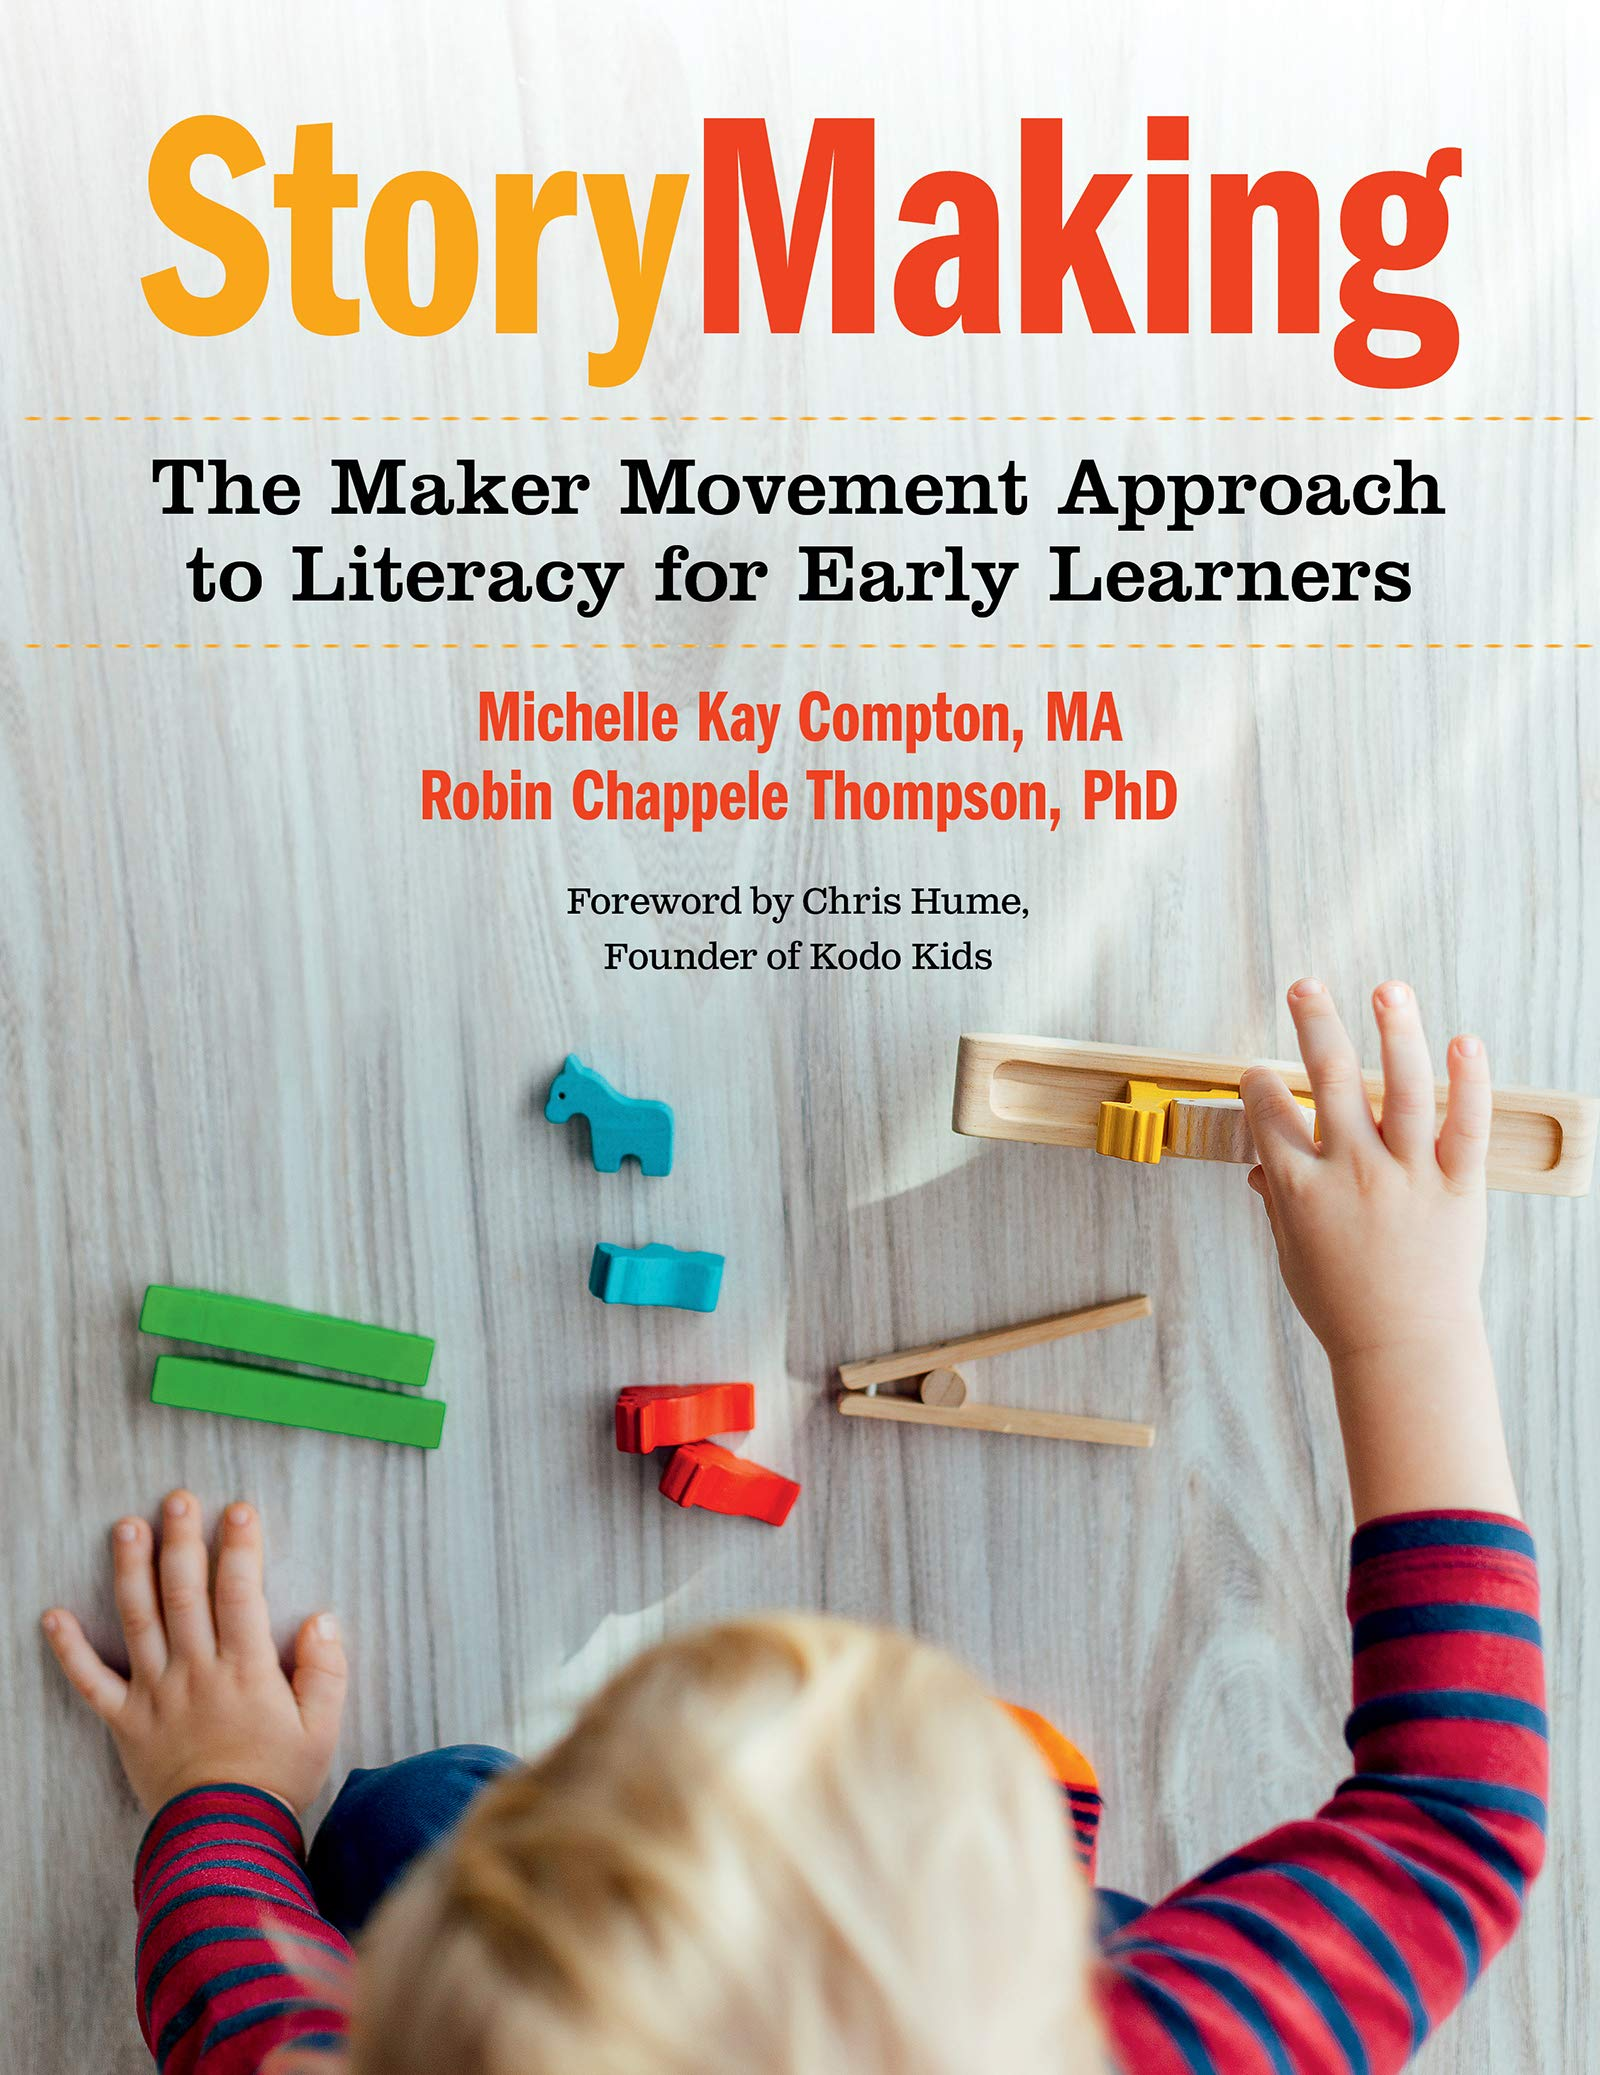 Storymaking The Maker Movement Approach to Literacy for Early Learners